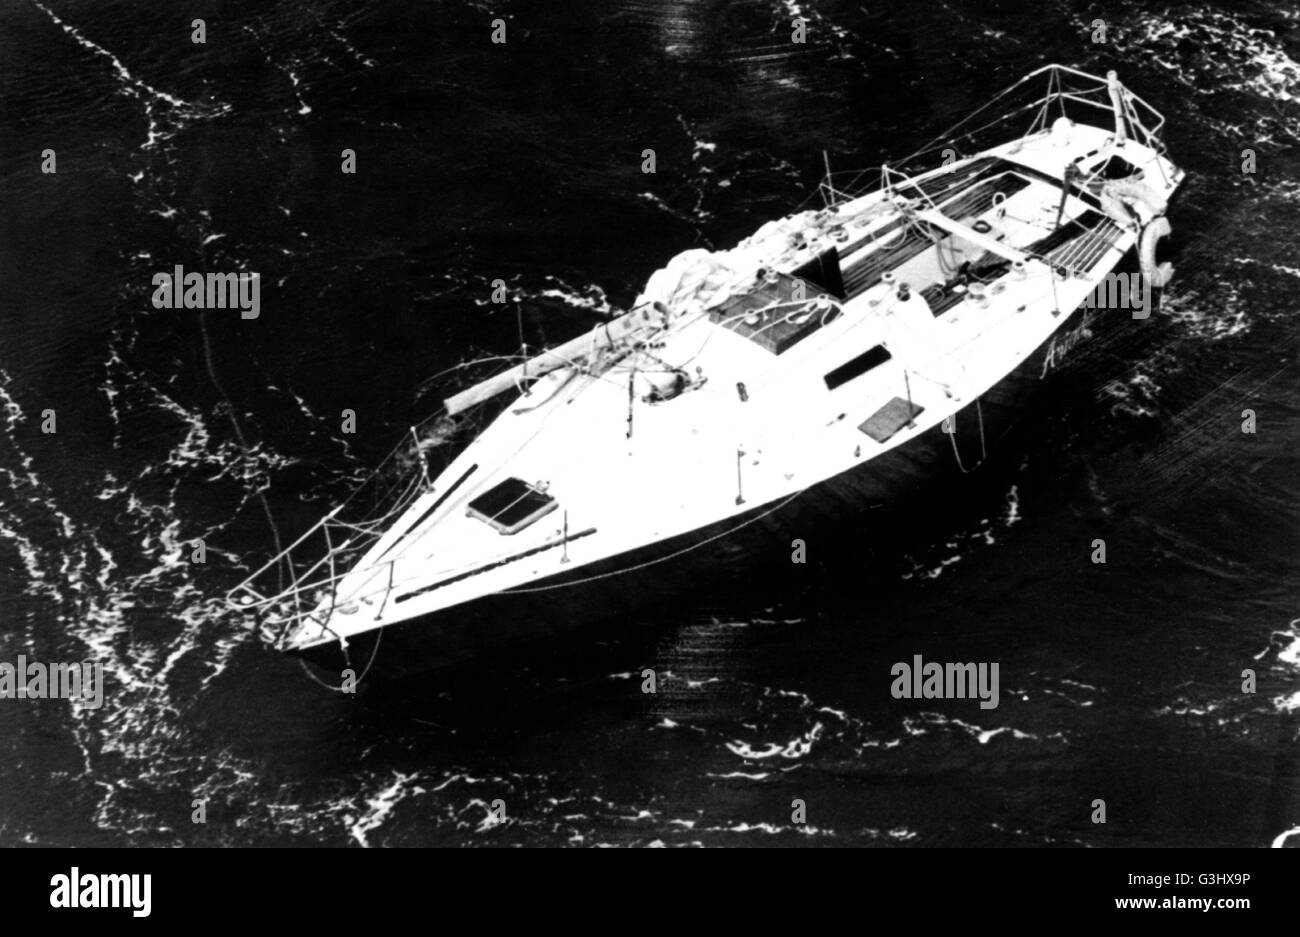 AJAXNETPHOTO 14TH AUGUST,1979. PLYMOUTH,ENGLAND.- FASTNET RACE - AMERICAN CASUALTY. - THE DISMASTED AMERICAN ENTRY Stock Photo